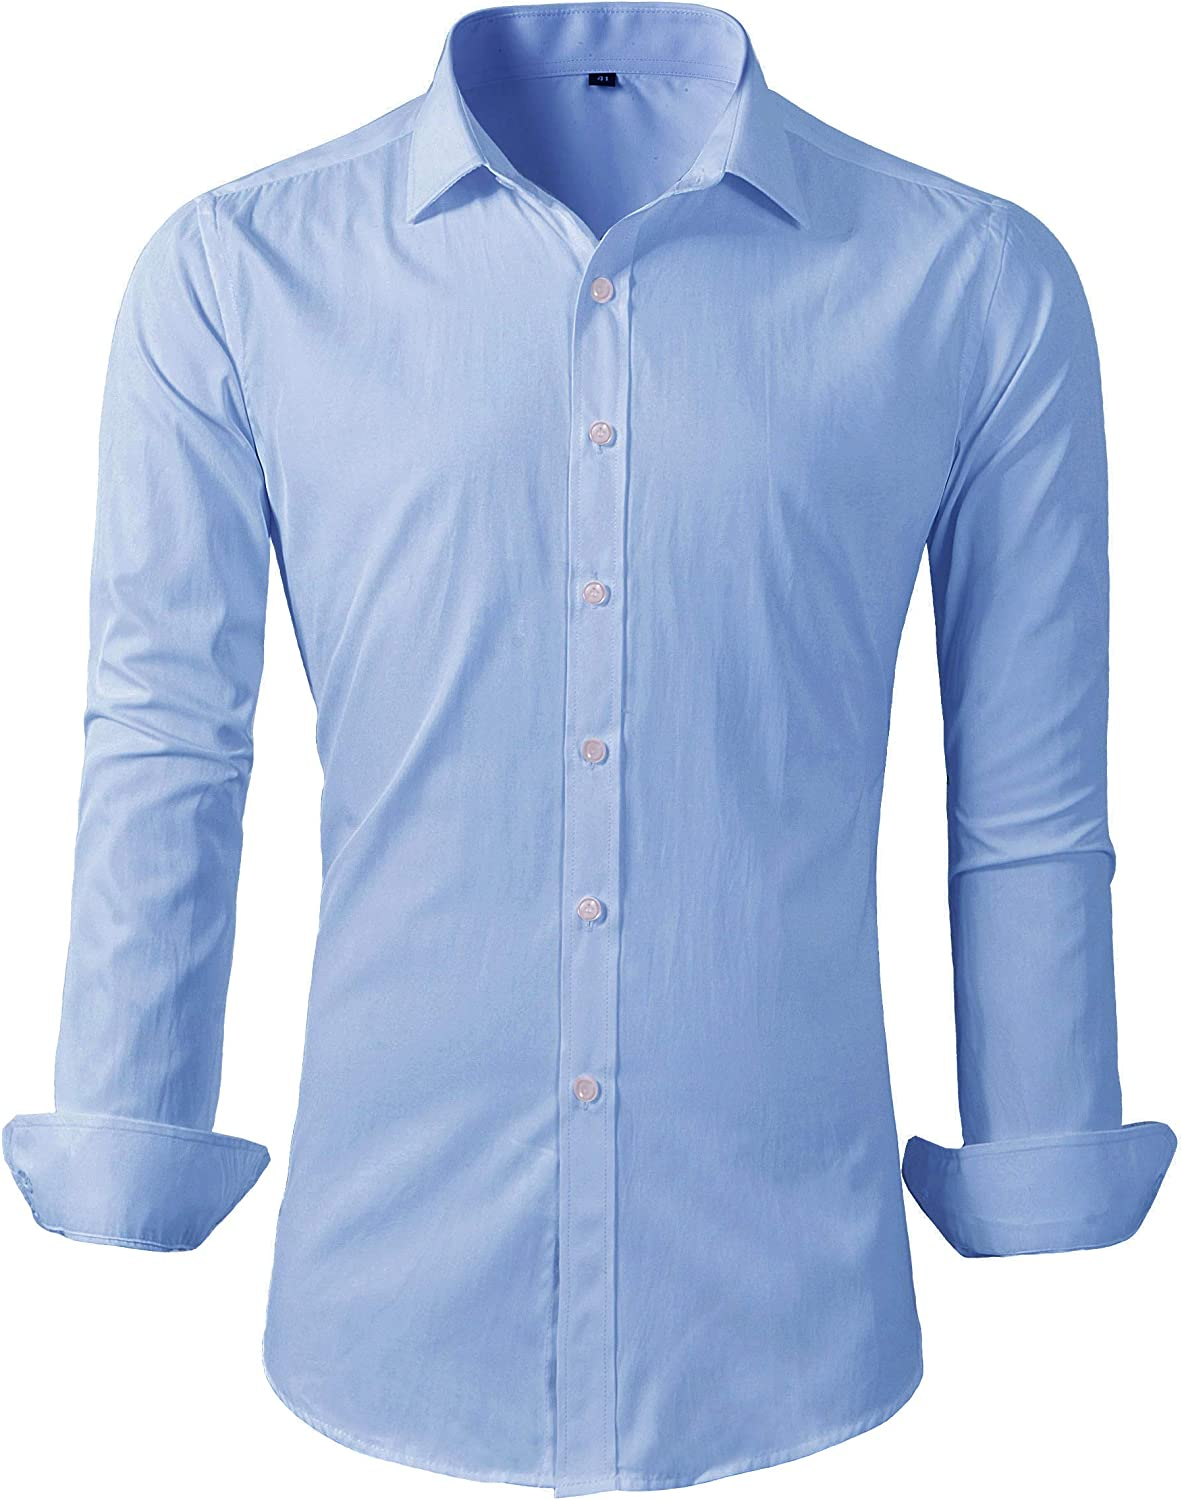 Men/'s Western style Double Breasted Shirt Long sleeve Slim Fit Blouses Casual B